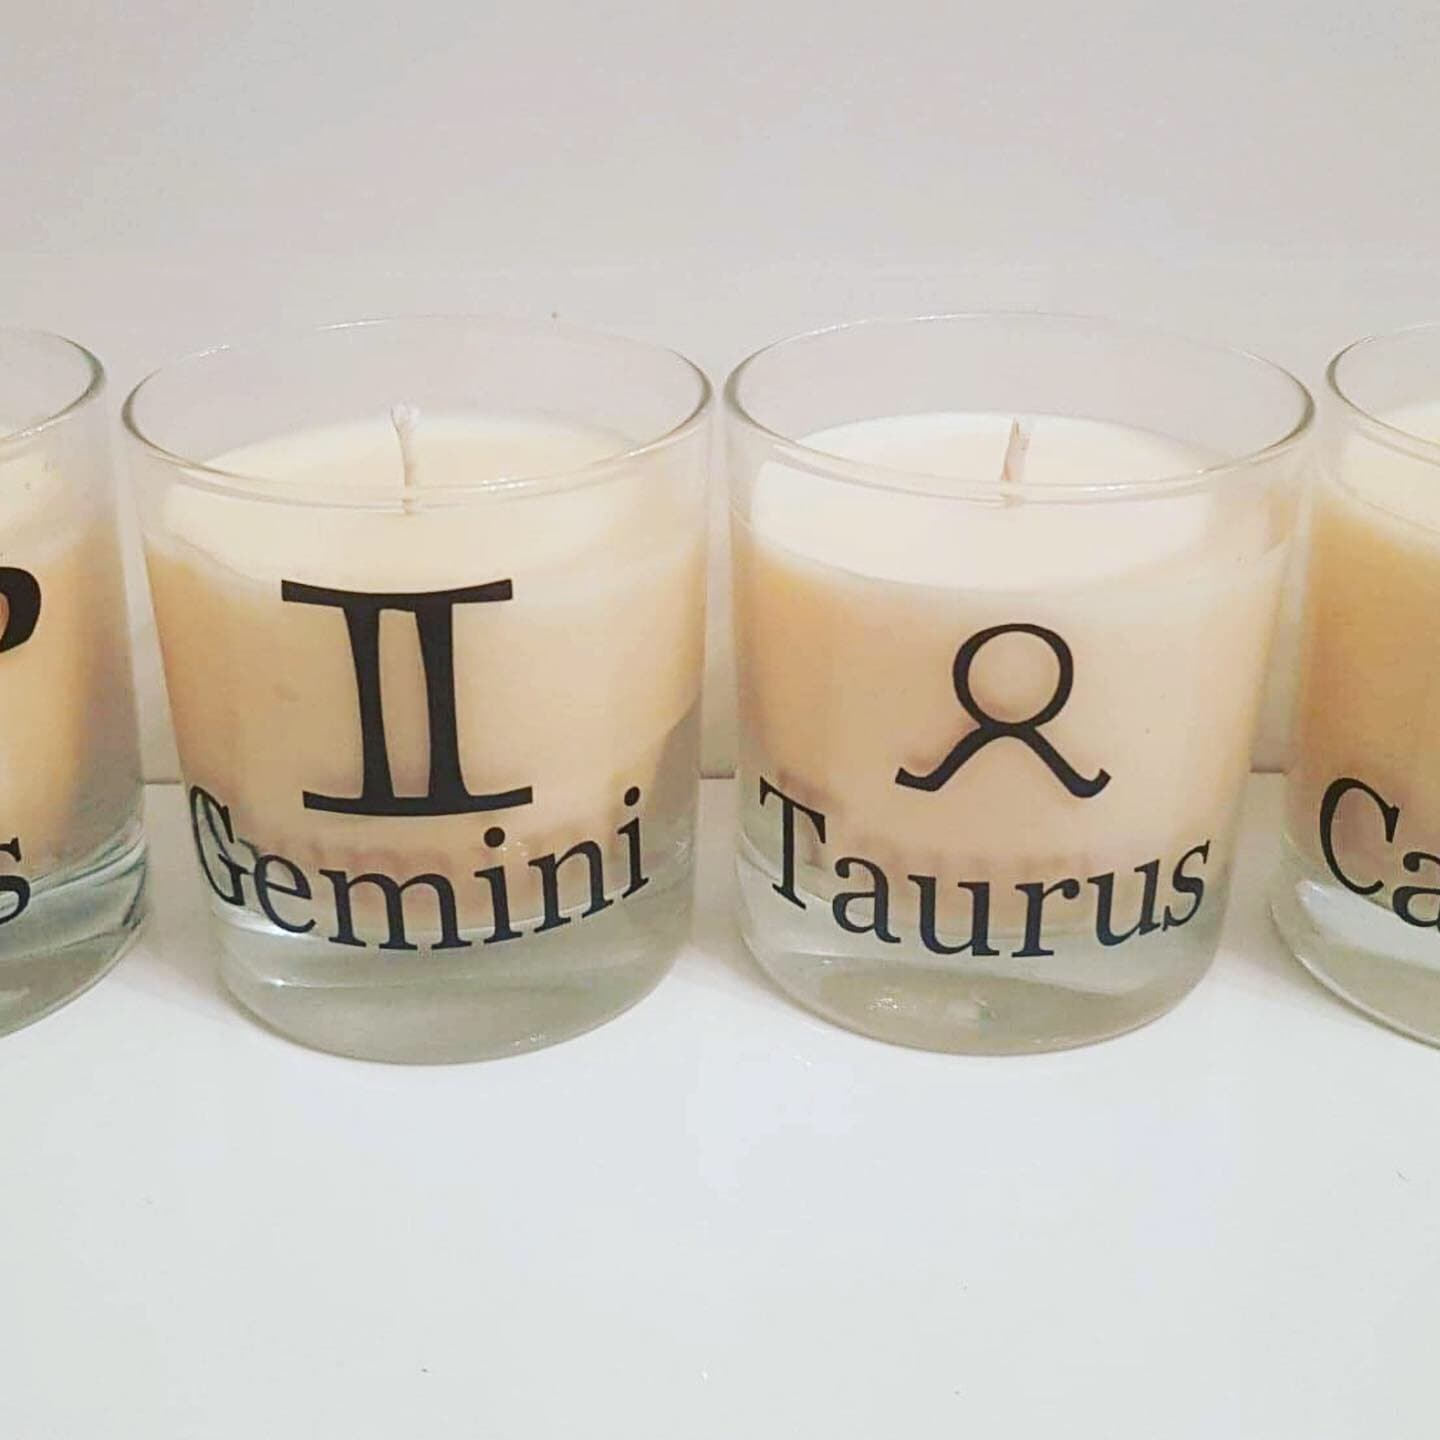 Soy Wax Scorpio Zodiac Candles - Scorpio - scent is matched to the star Sign - Pugglewick Candles